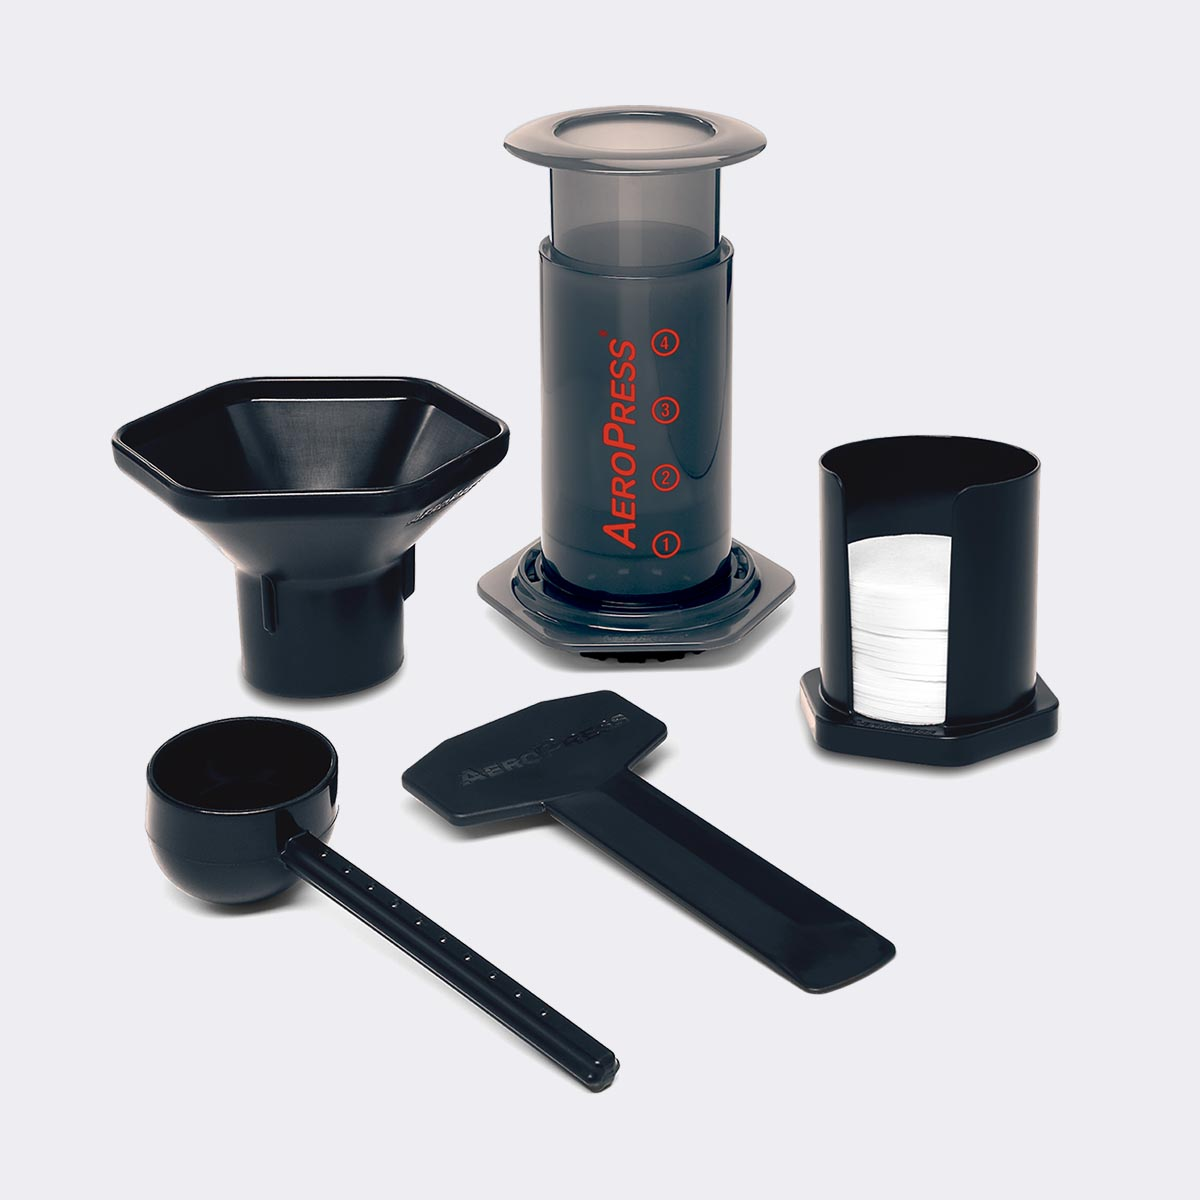 AeroPress Coffee and Espresso Maker Fox Coffee Roasters